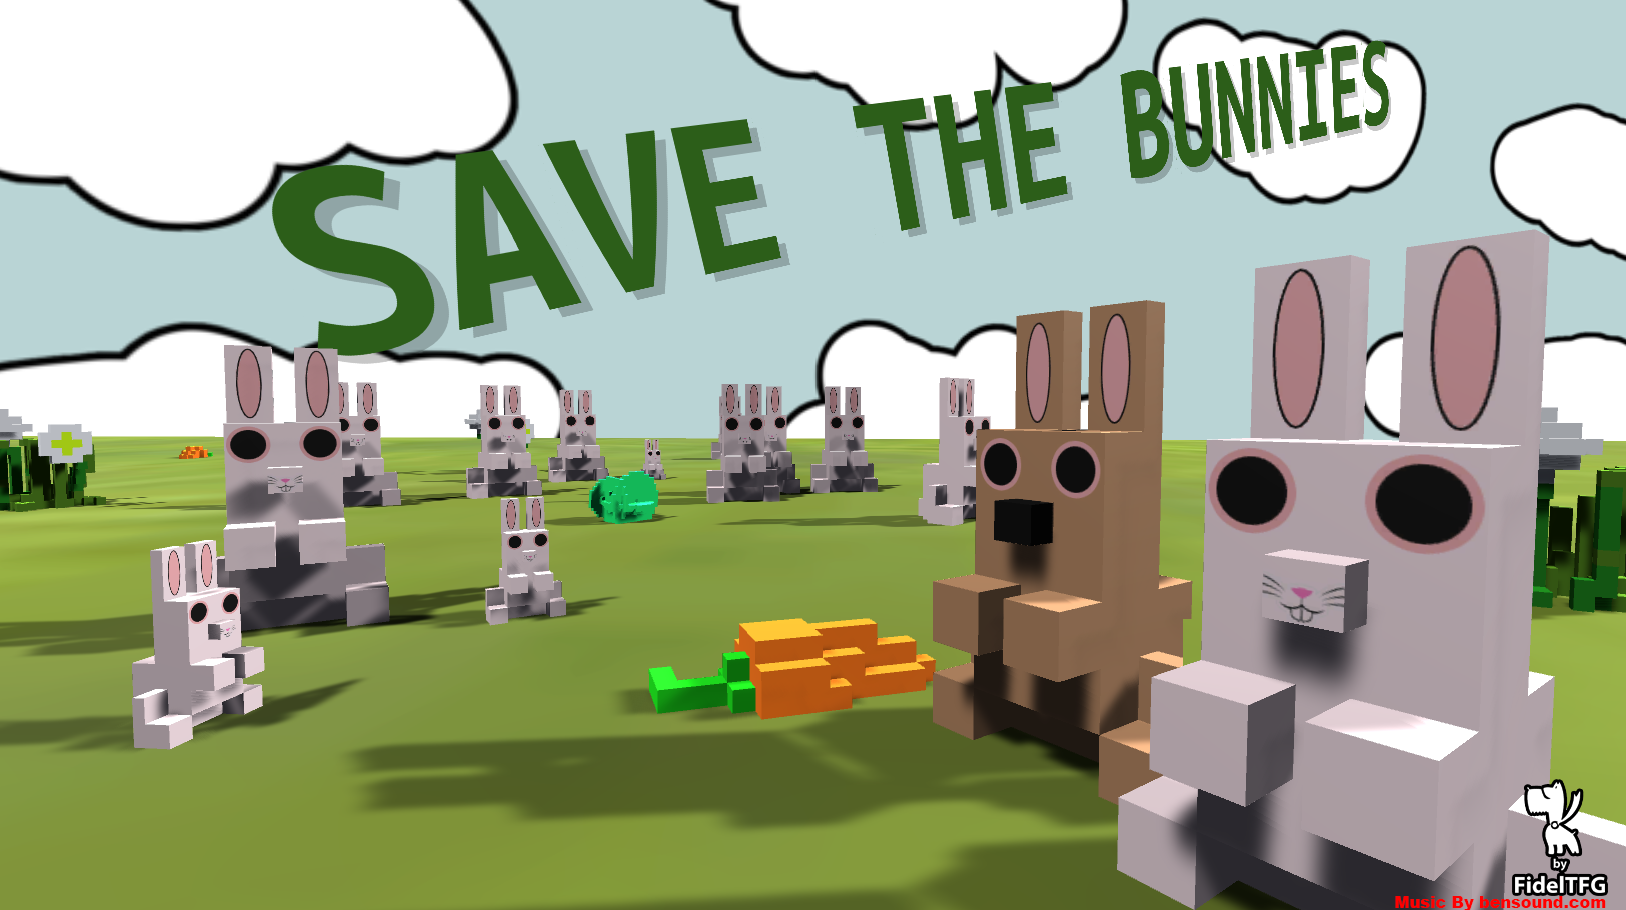 Save The Bunnies!!!